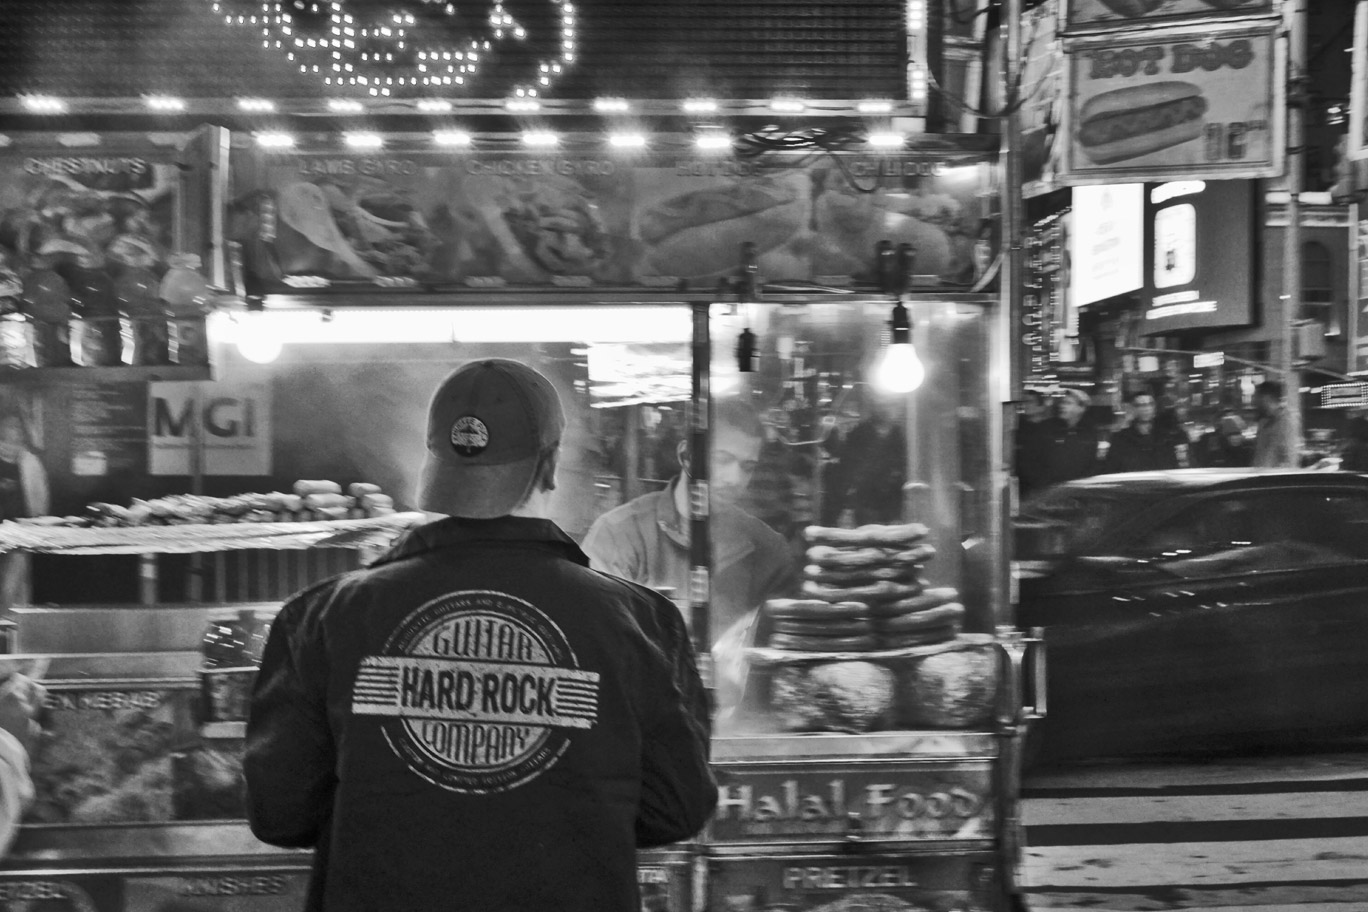 Tourist at a New York food stand